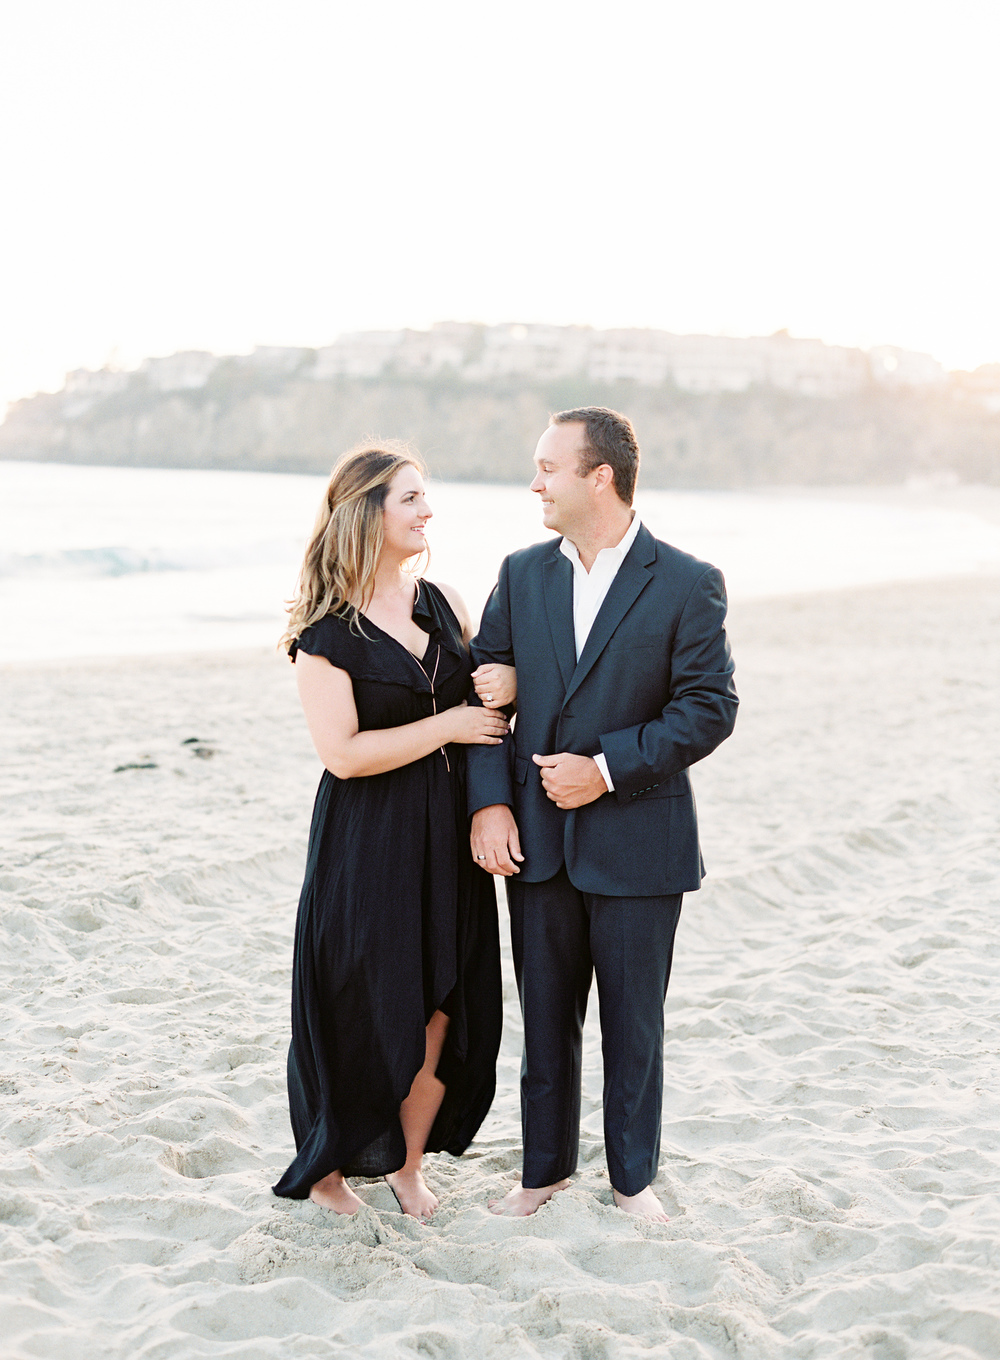 Laguna-Beach-Engagement-Film-Wedding-Orange-County-86.jpg